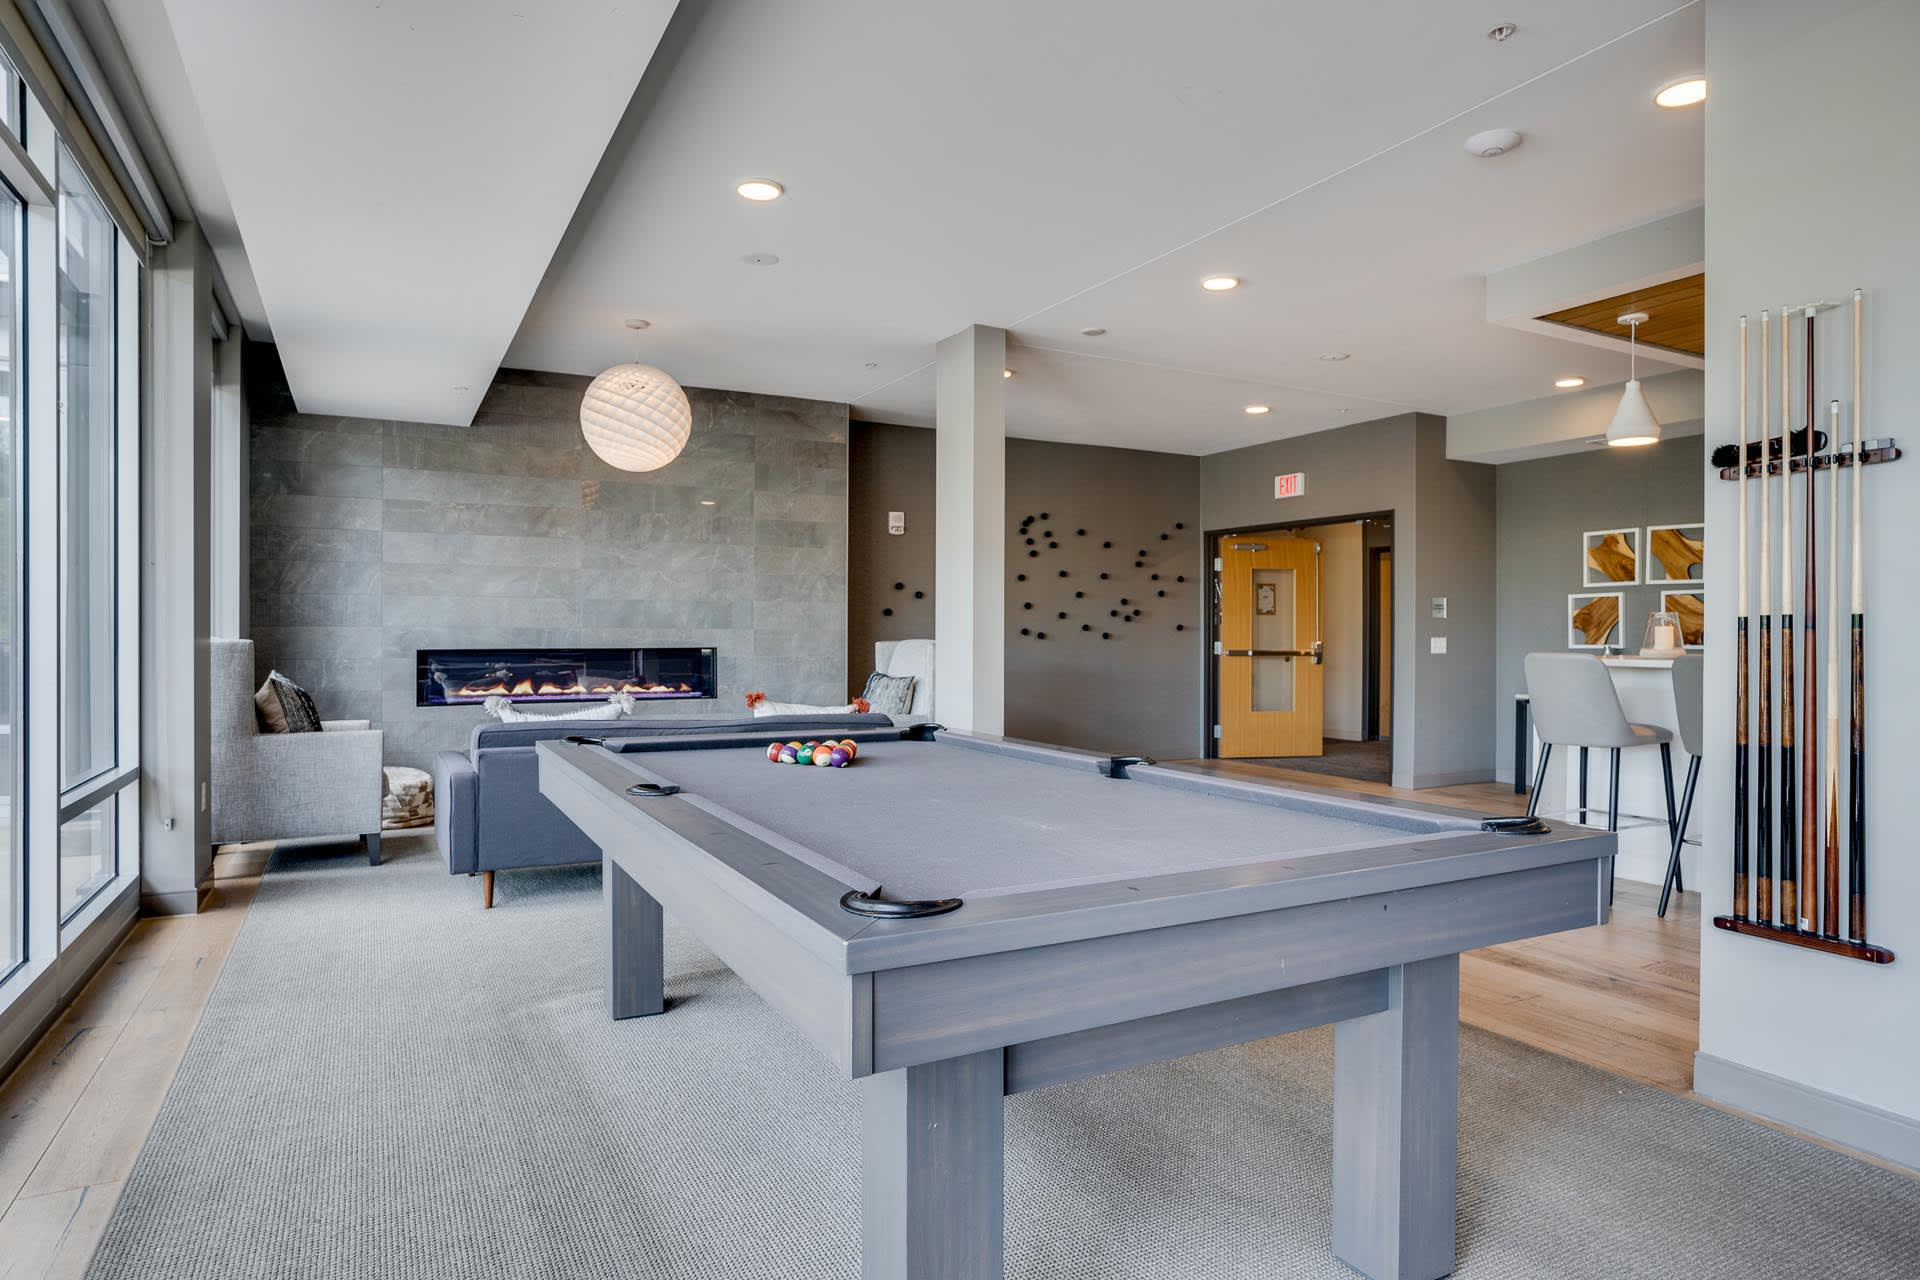 The Club Room features a pool table, big screen TV, and a gourmet kitchen